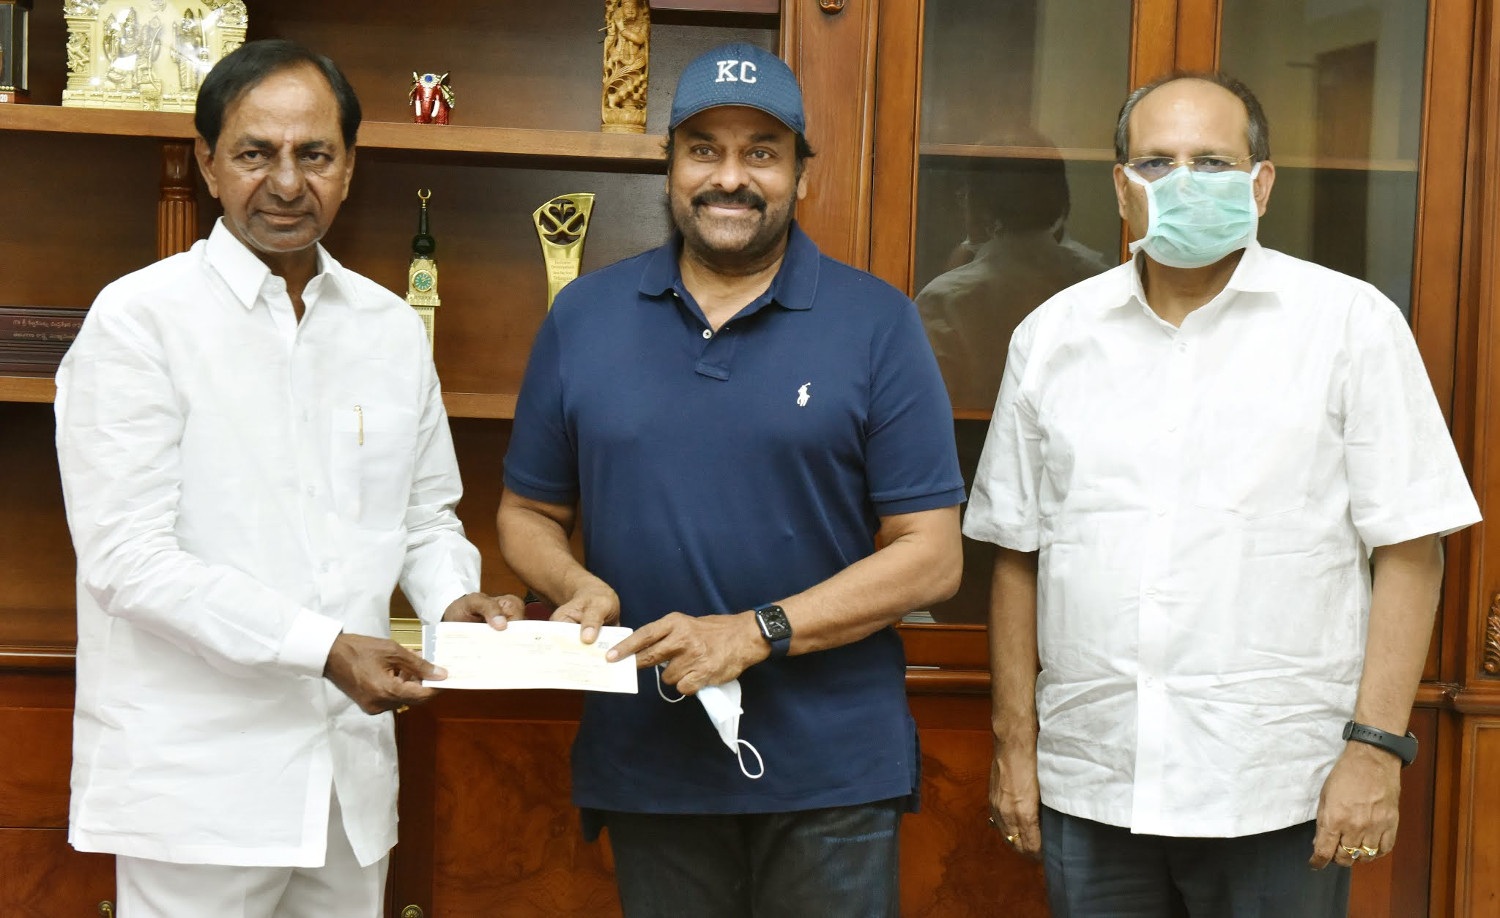 Chiranjeevi CM KCR has Announced Film City would be set up on the Outskirts of Hyderabad